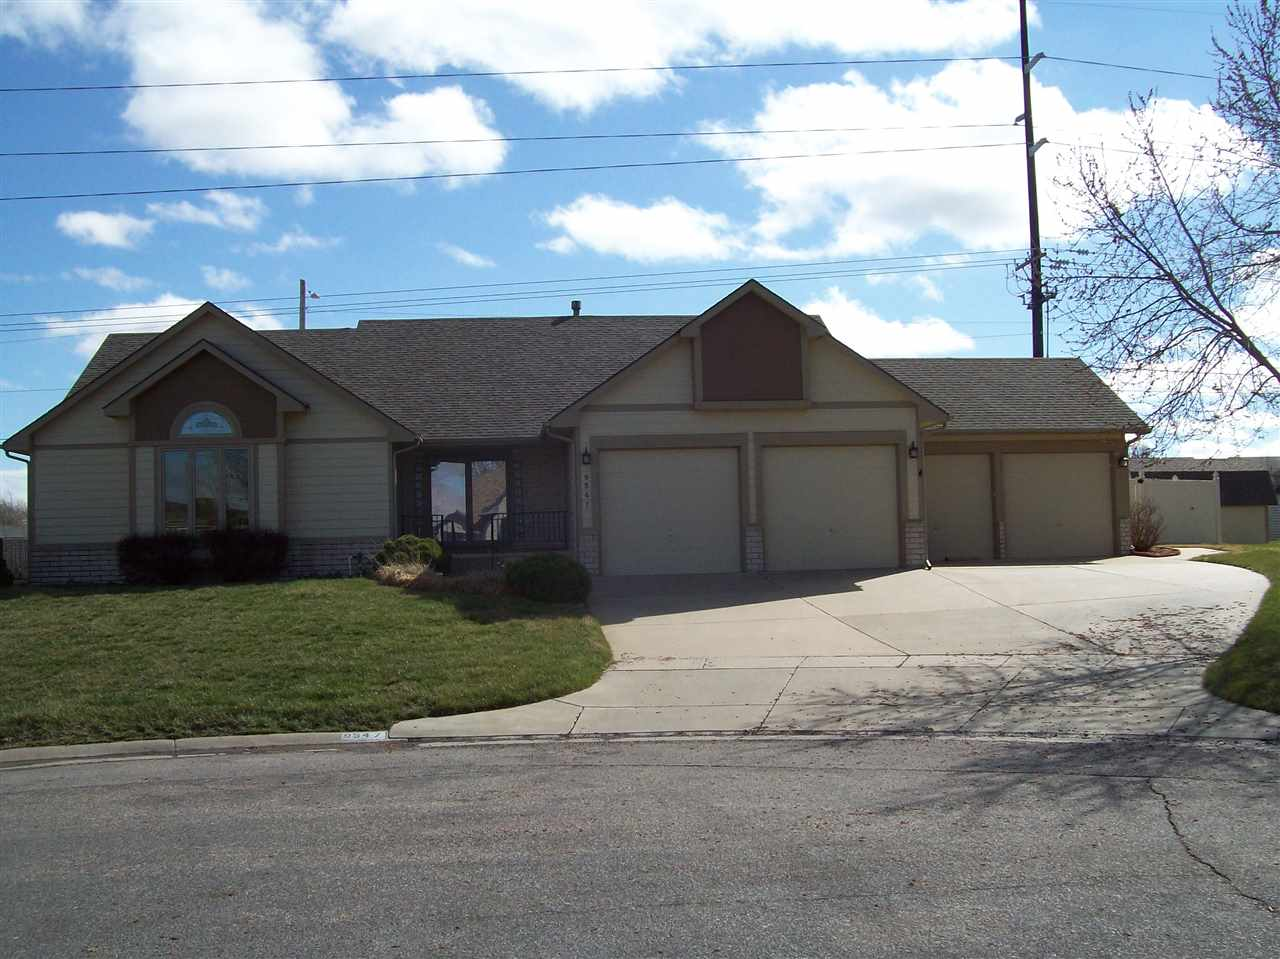 Wonderful 2900 sq ft. 4 car ranch originally designed and built for WHEEL CHAIR use with wider door